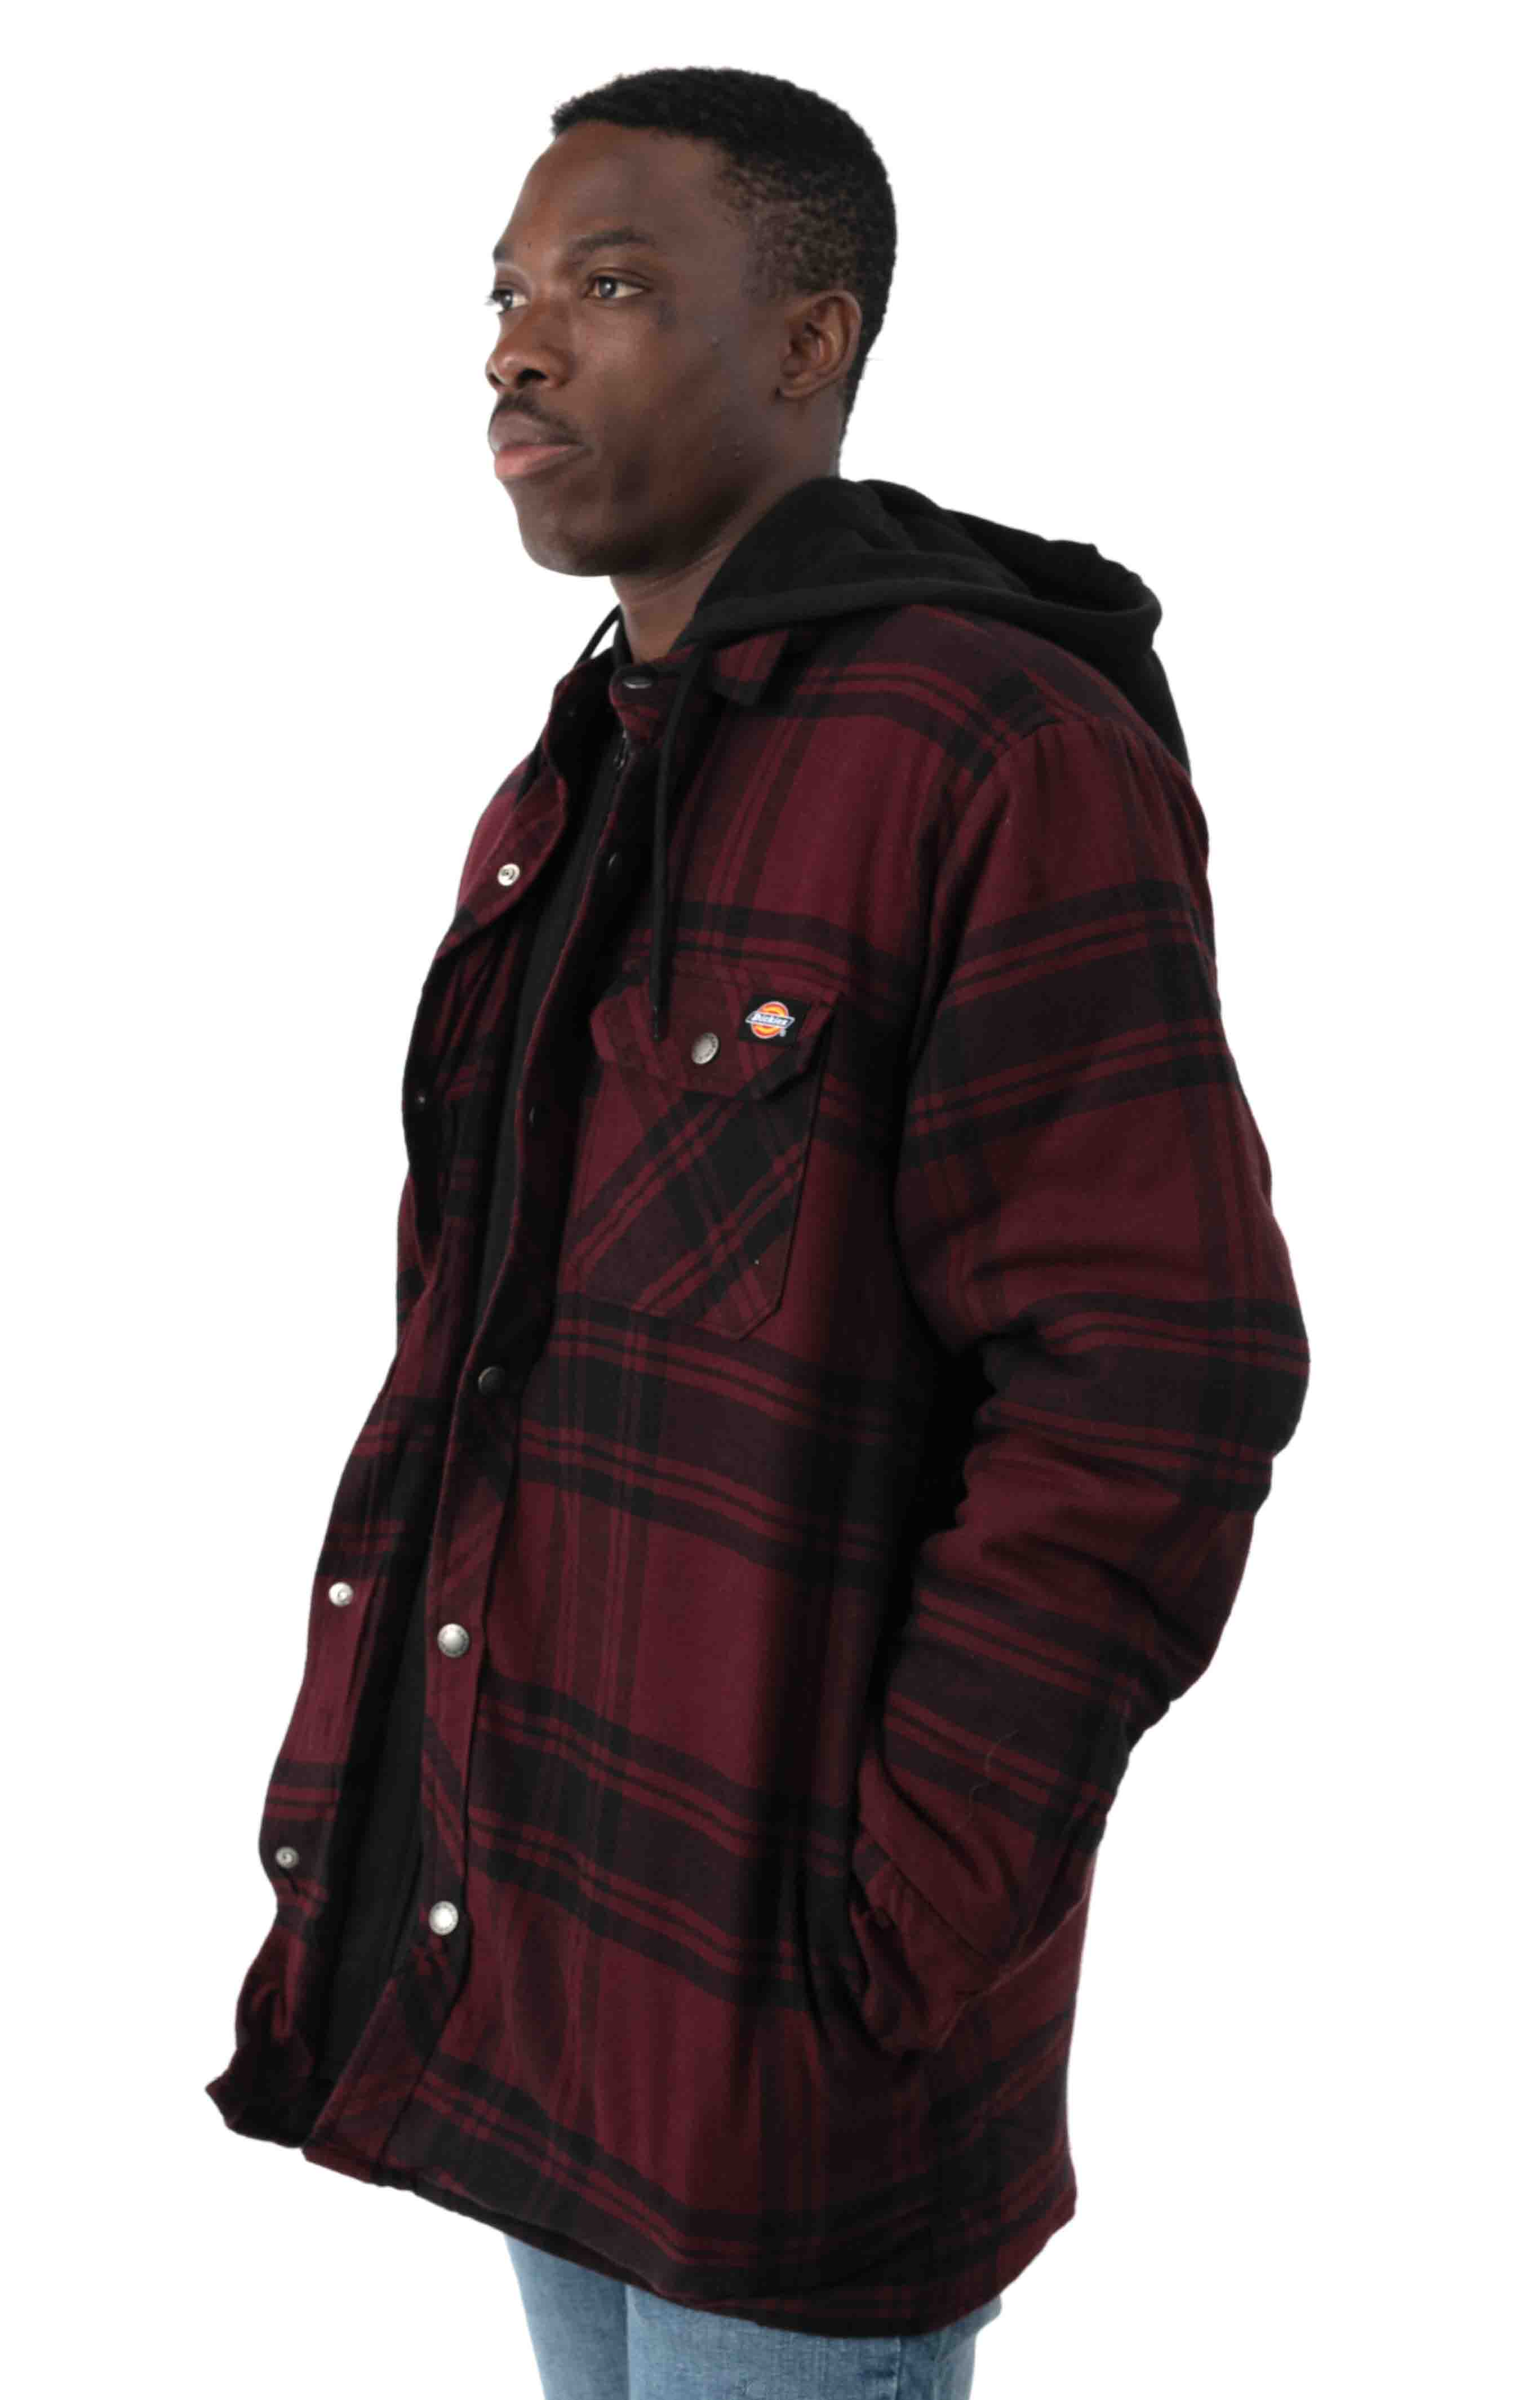 (TJ201) Relaxed Fit Icon Hooded Quilted Shirt Jacket - Dark Port/Black Plaid  2